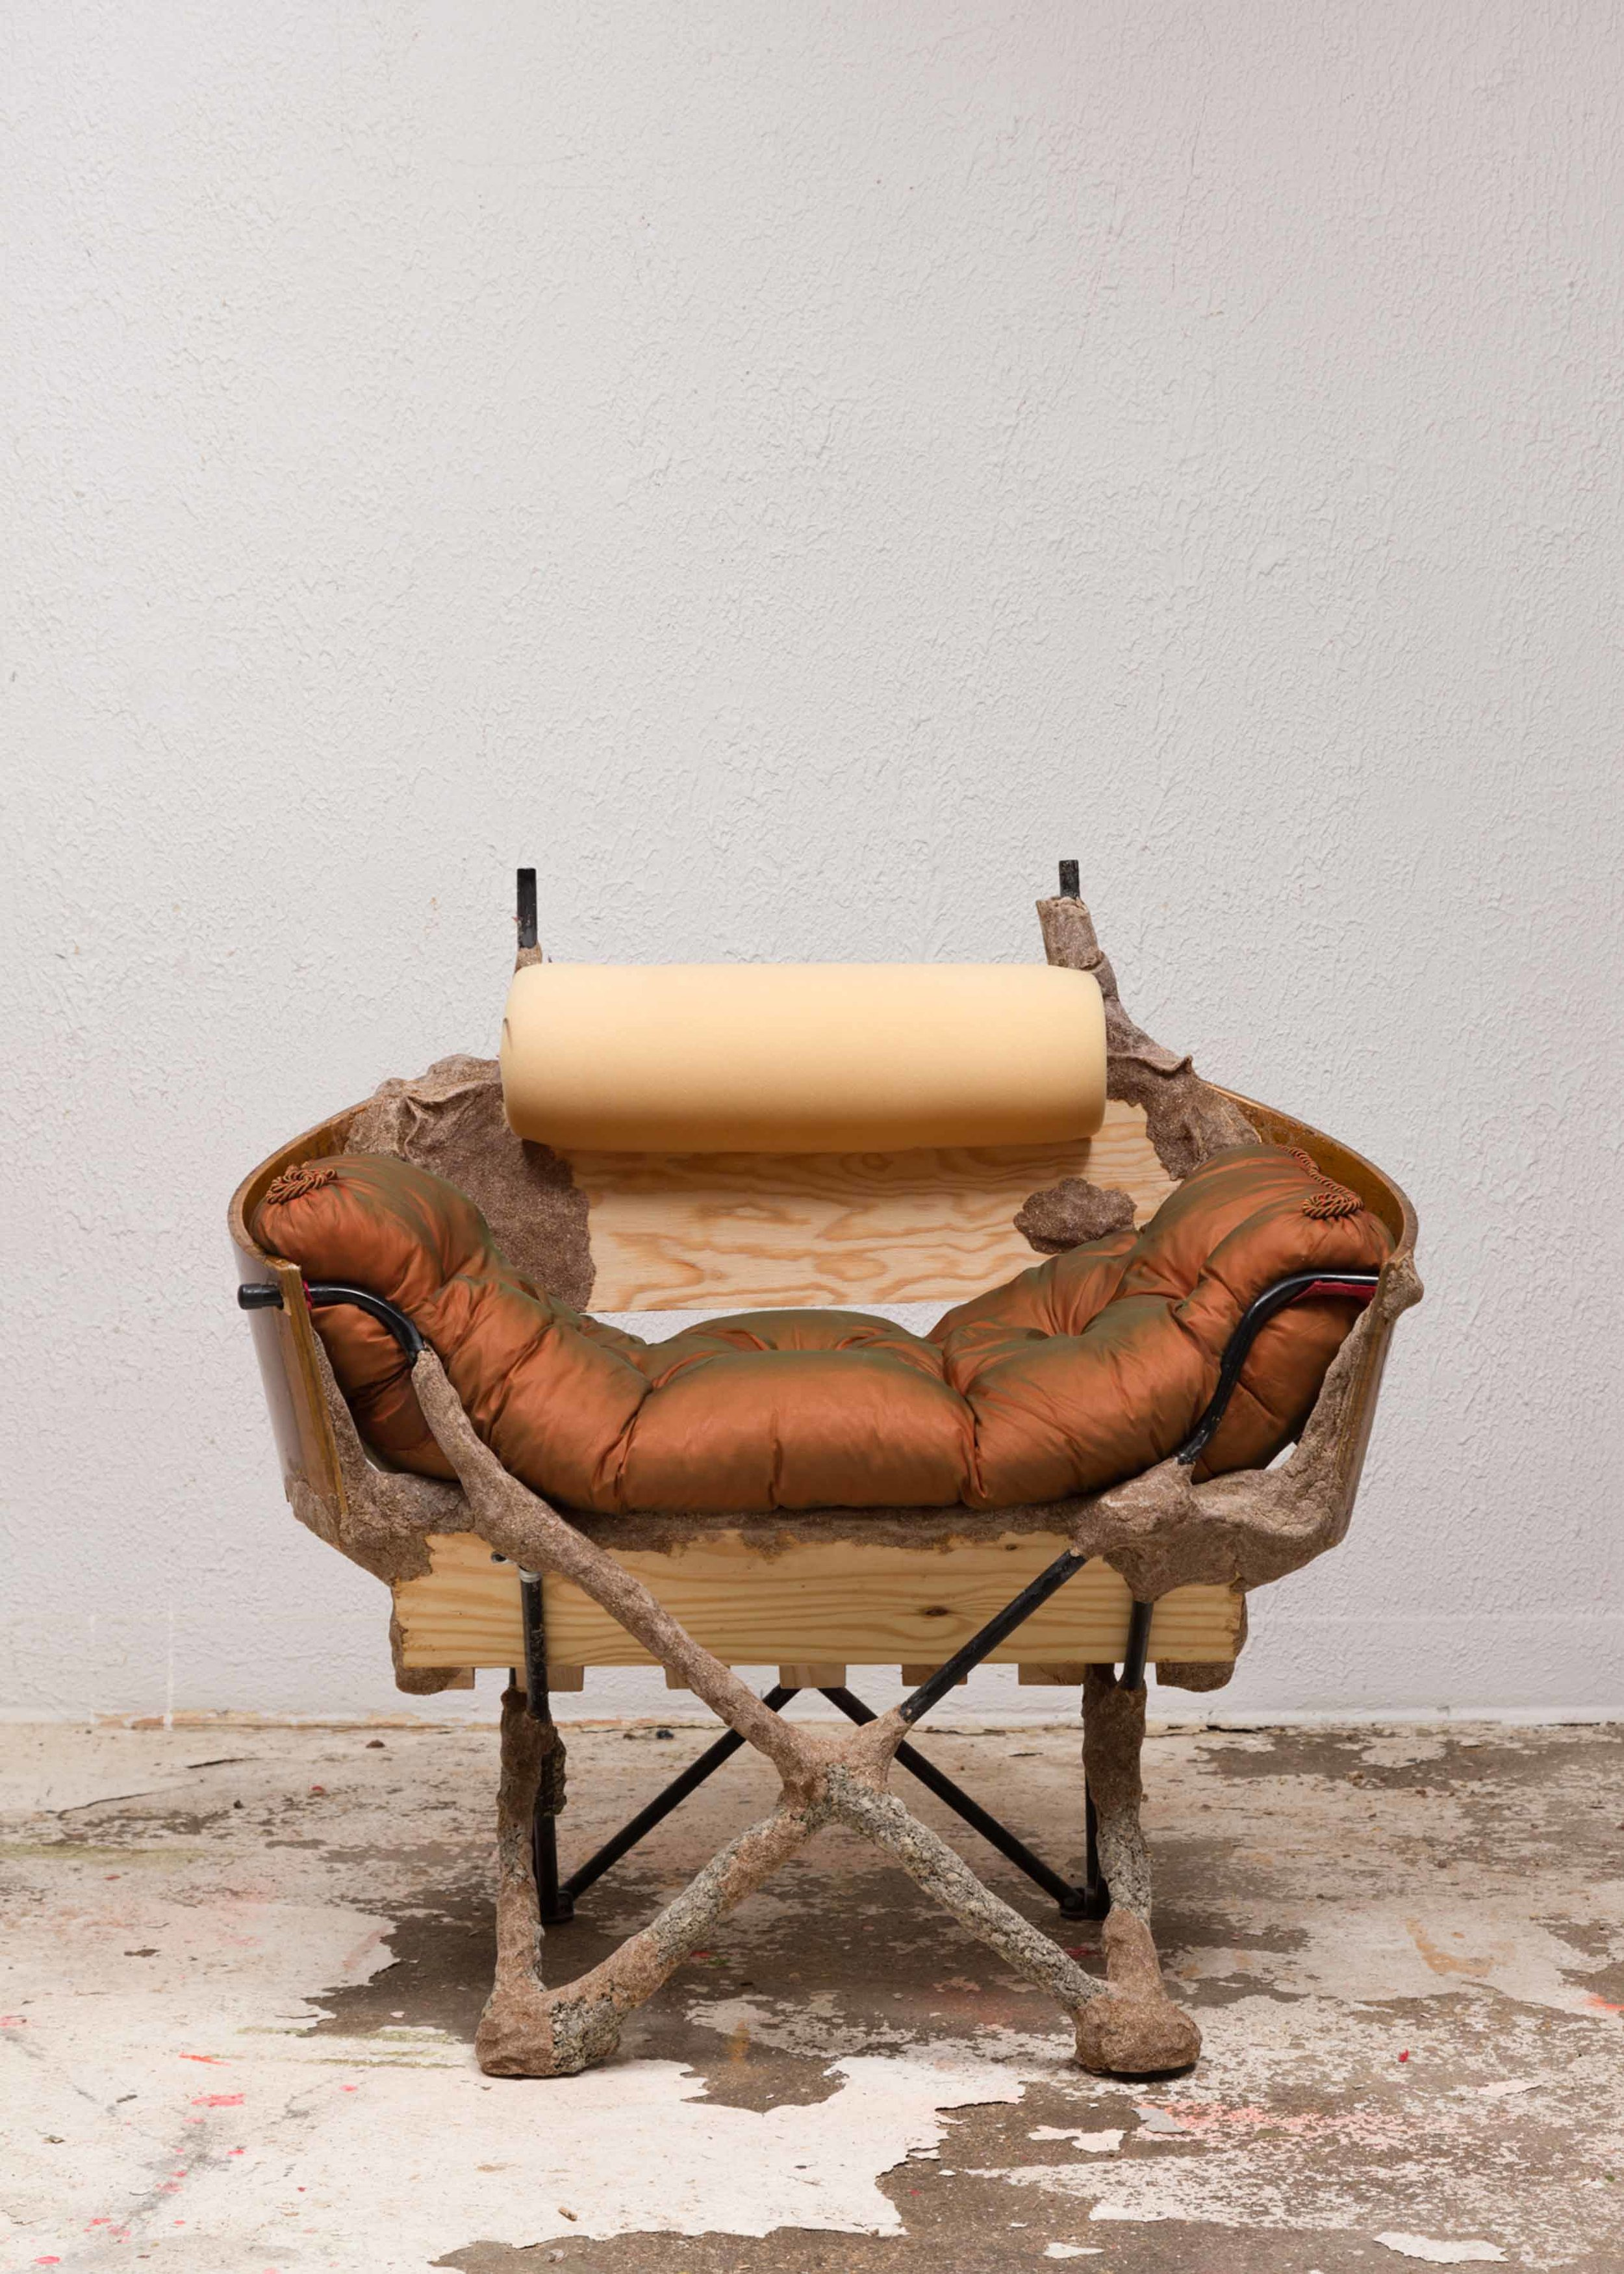 Crust Bucket Comes to Town (slipper chair) 2016 Steel frame, pine, studio dust, wood glue, polyurethane foam, cotton, silk, plywood, nylon, cording and hardware 91.4 x 96.5 x 96.5 cm / 36 x 38 x 38 in